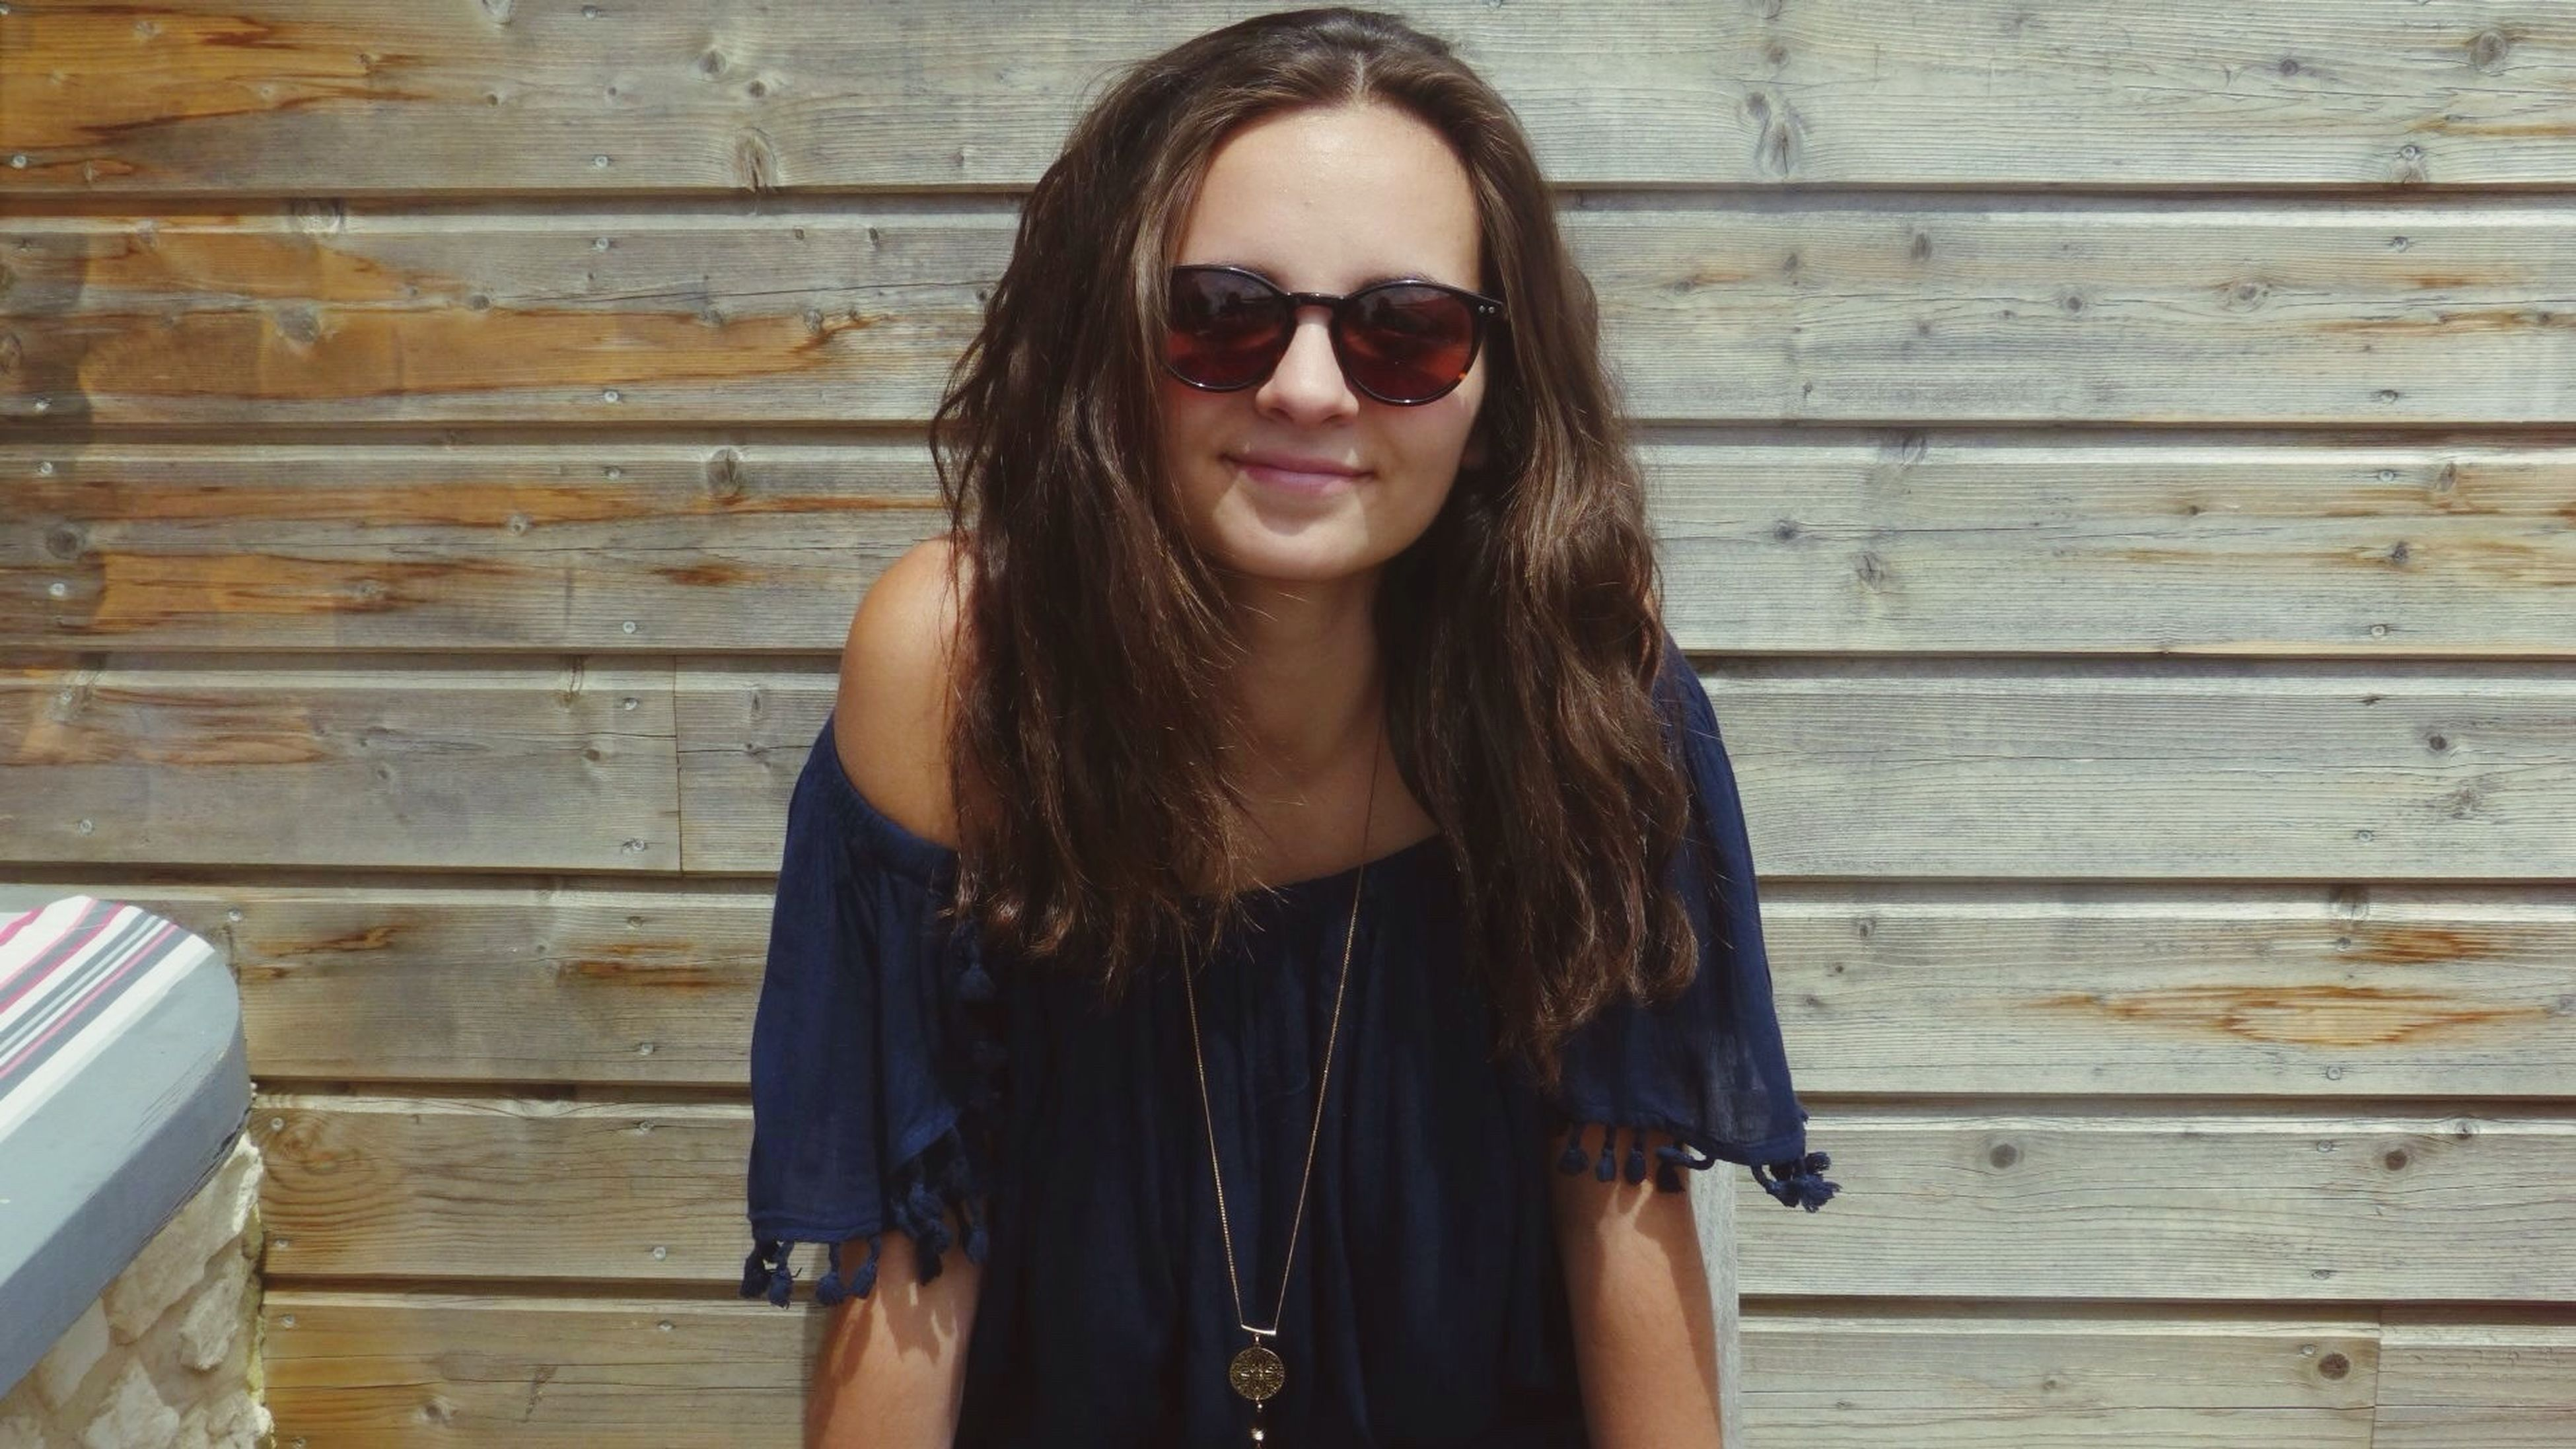 sunglasses, young adult, wood - material, one person, young women, standing, portrait, looking at camera, outdoors, beautiful woman, day, adult, people, adults only